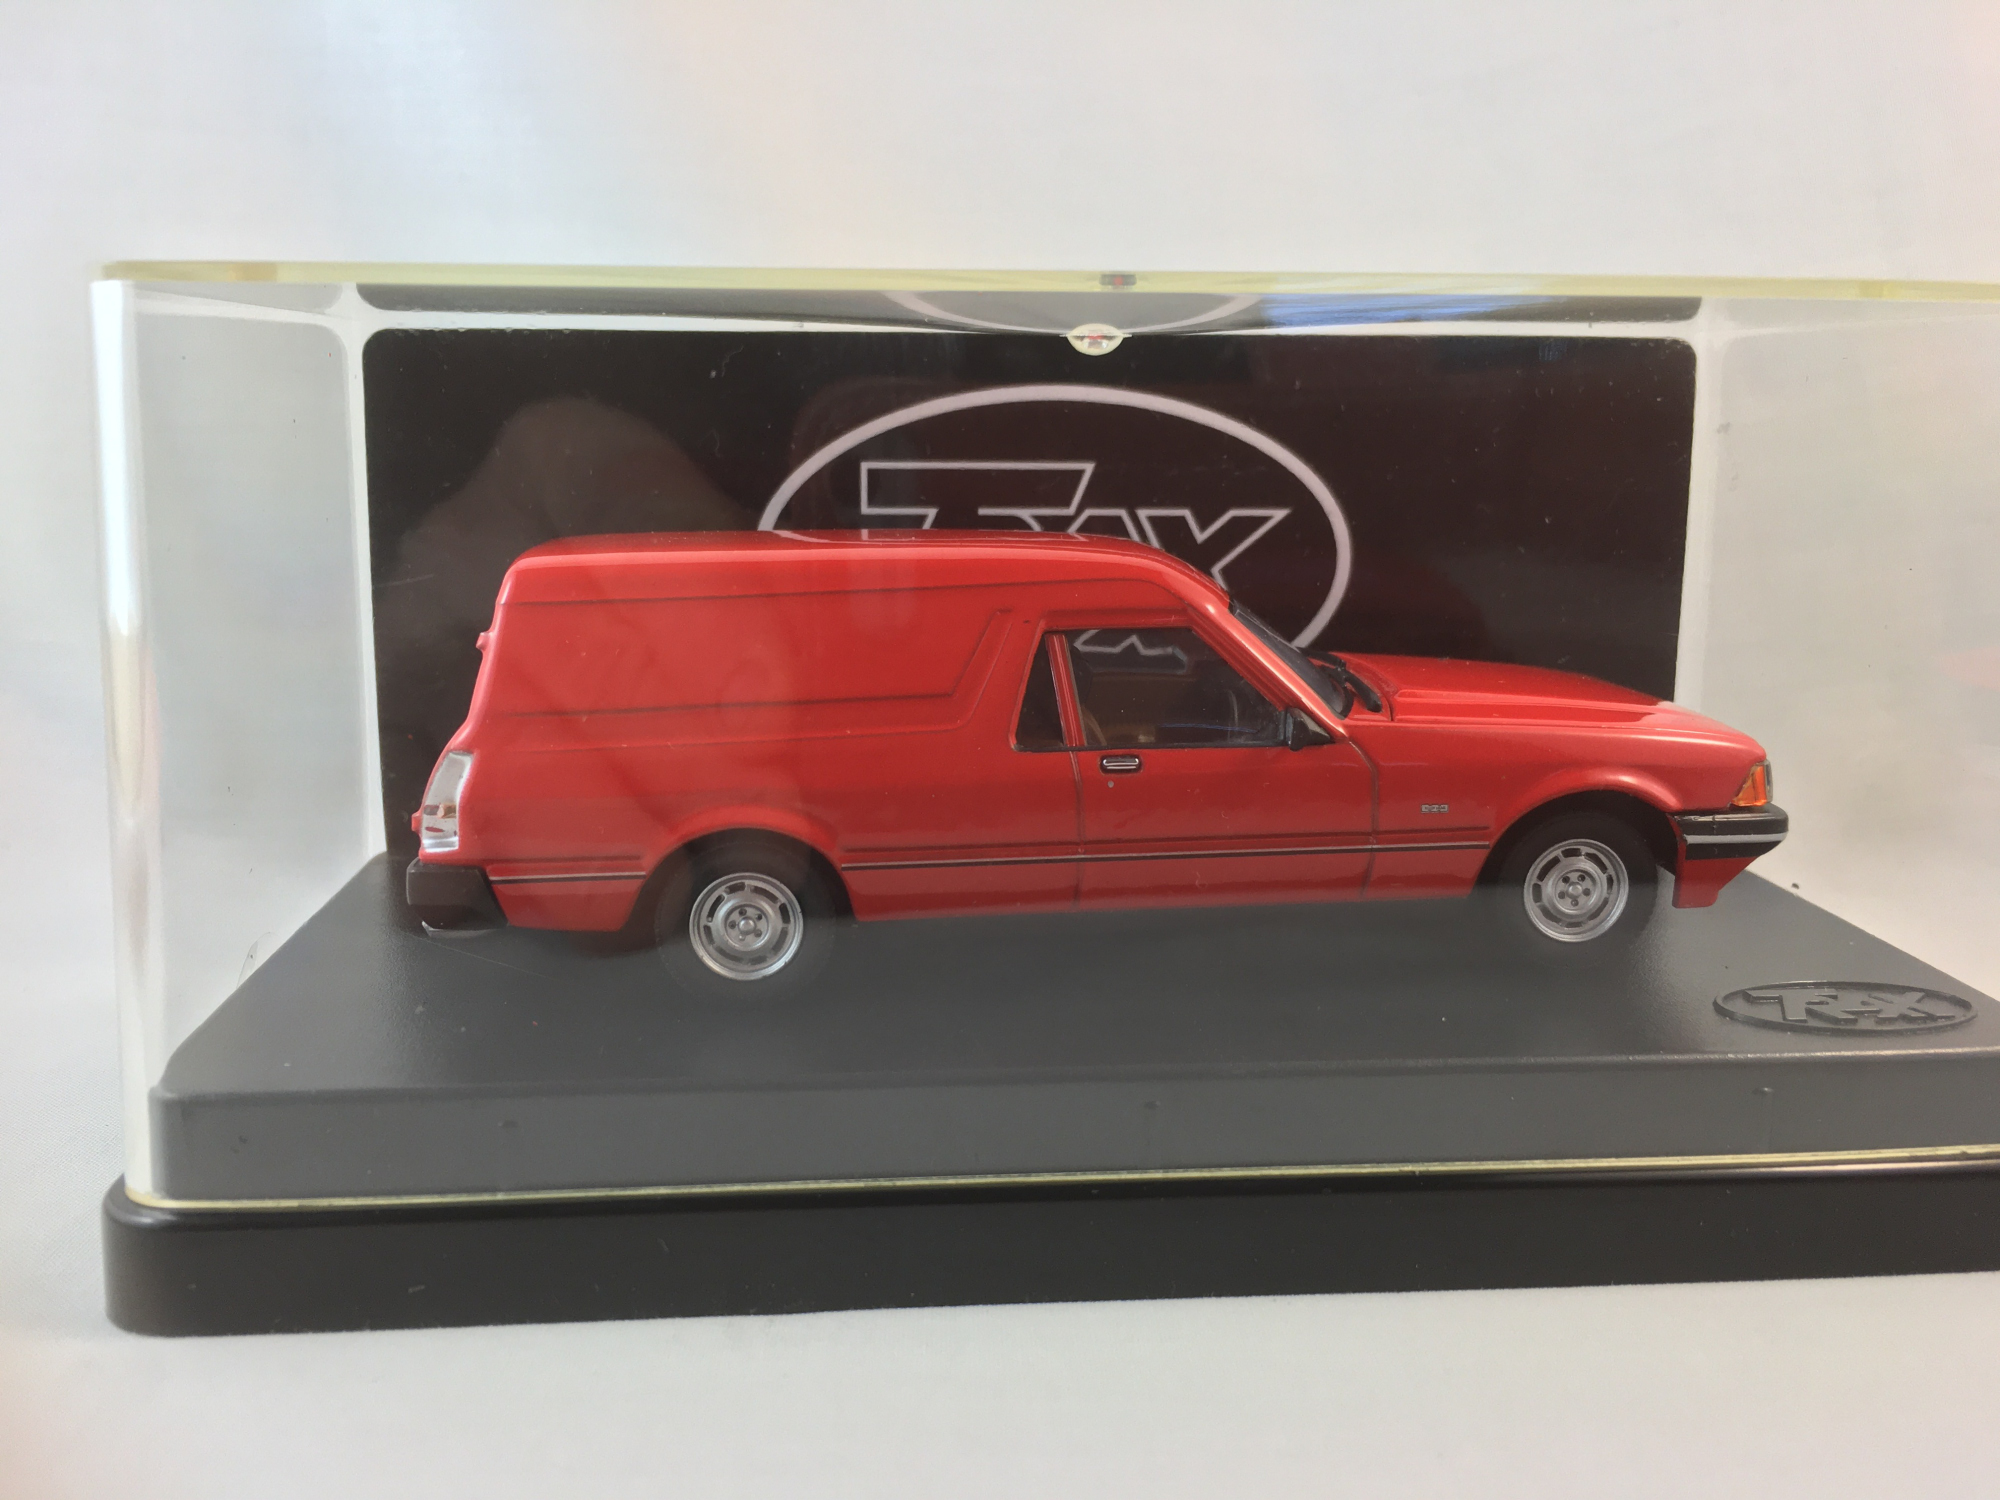 1979 Ford Falcon XD Panel Van – Monza Red